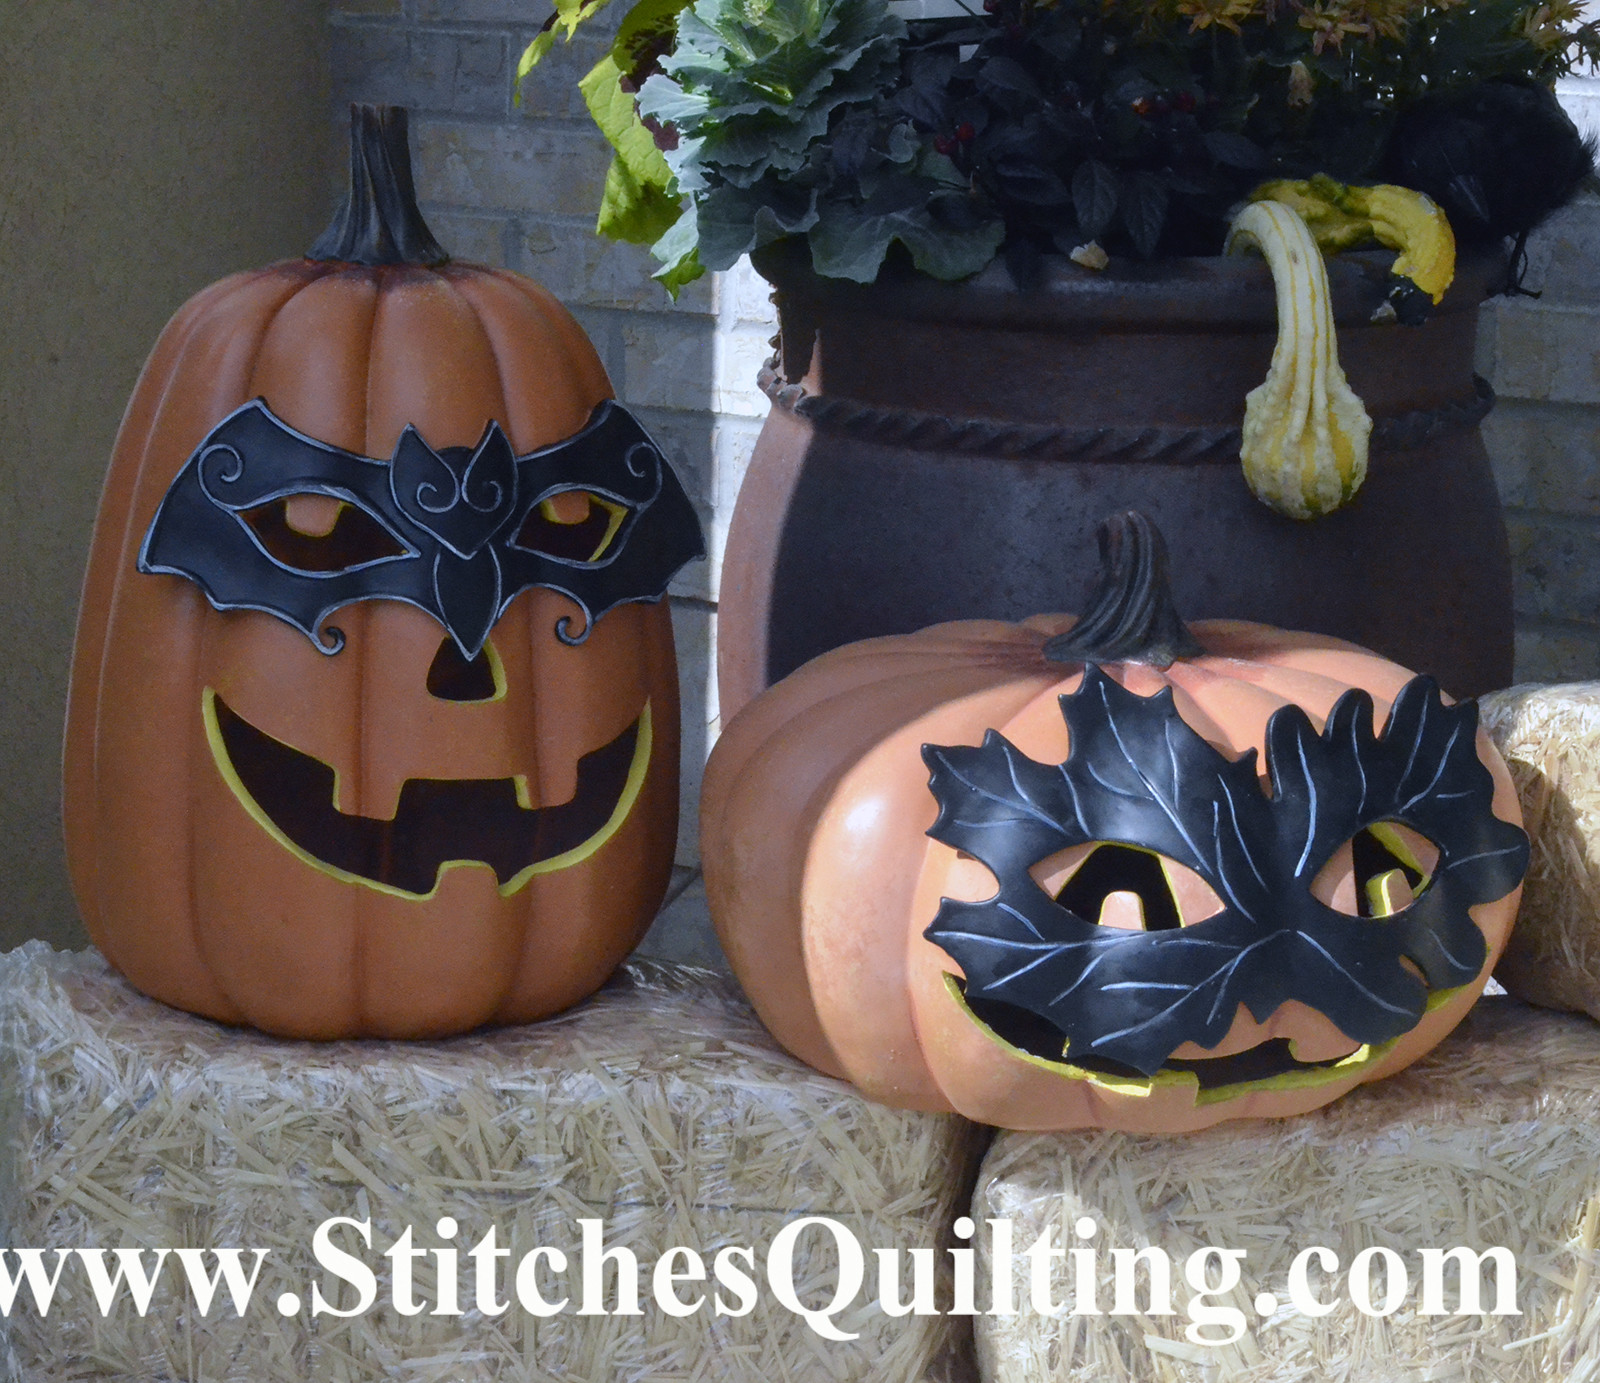 These pumpkins are ready for a masquerade!